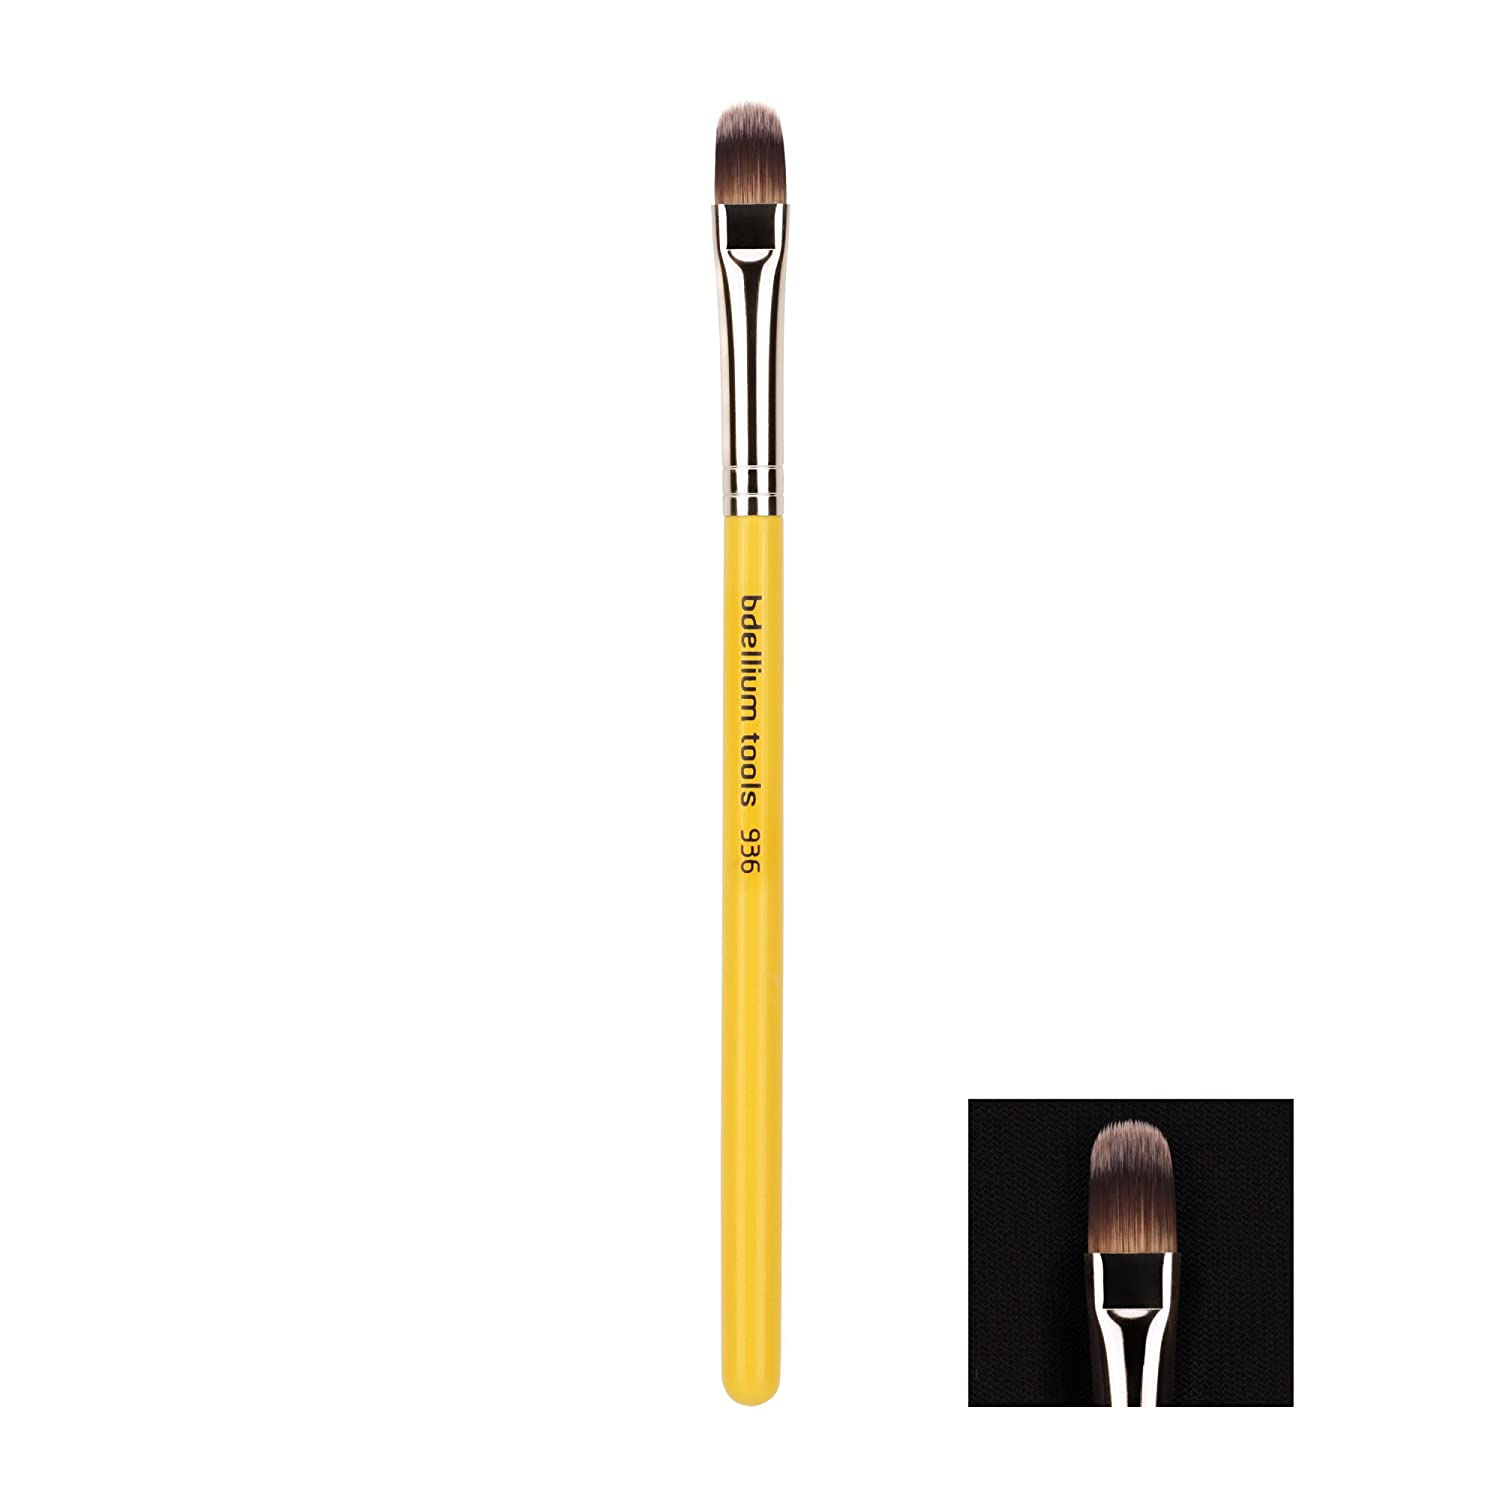 Bdellium Tools Professional Makeup Brush Studio Line - Concealer Application 936 BD-STUDIO-936